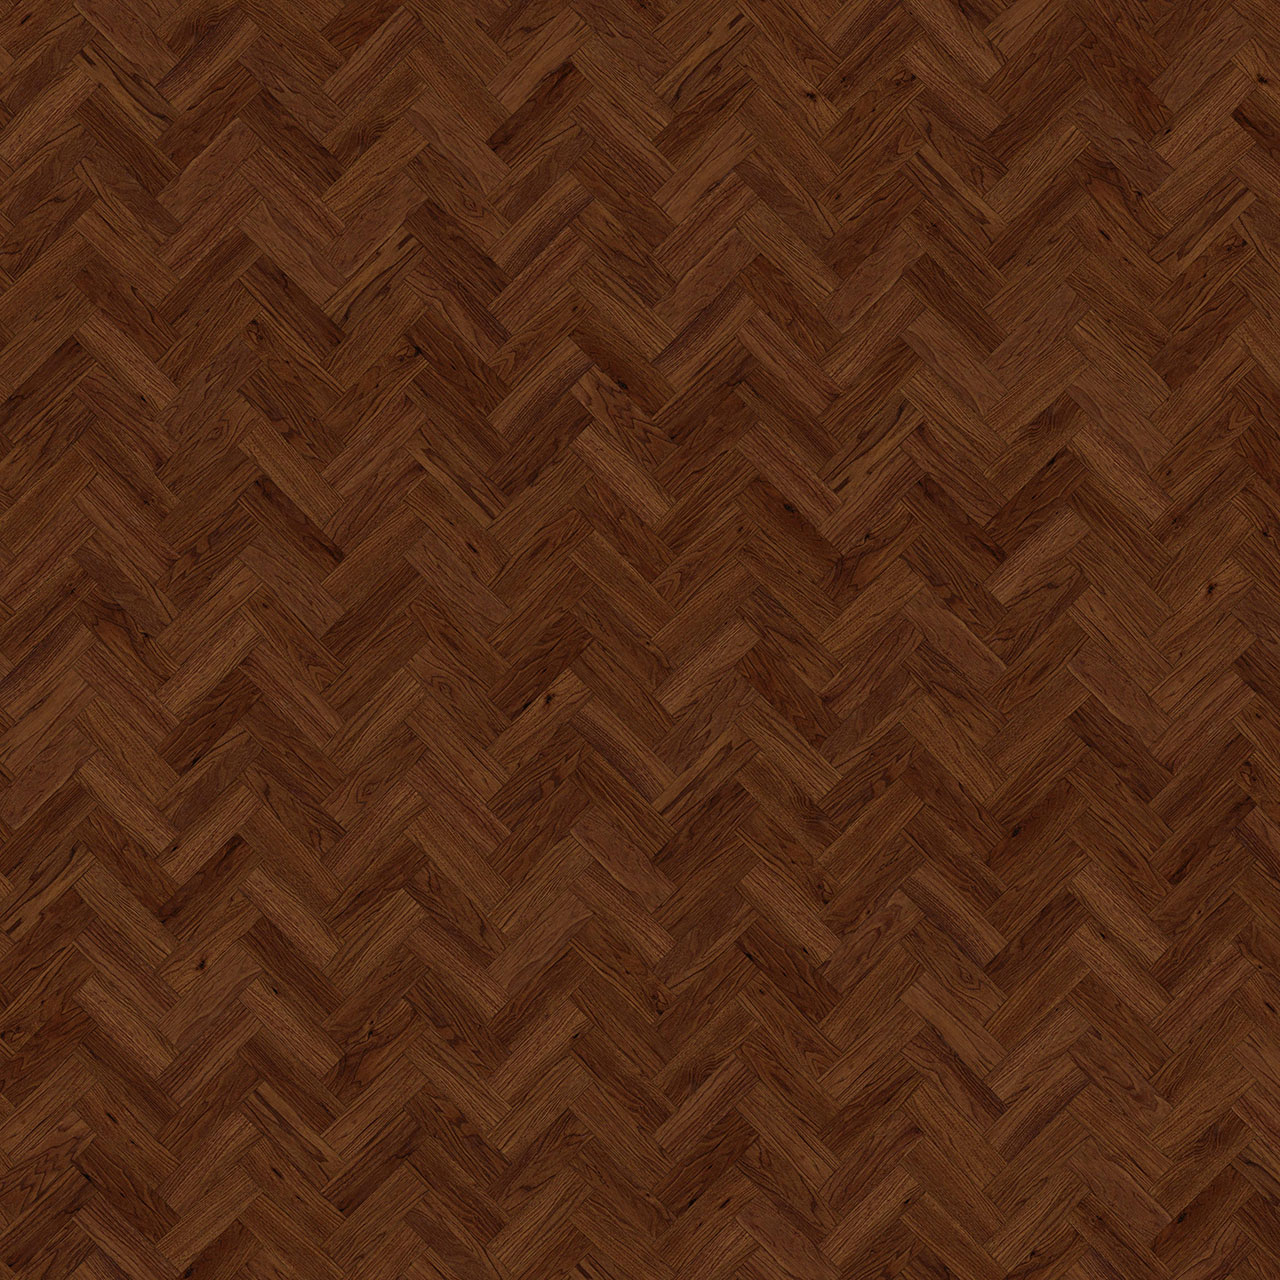 Amtico Spacia Black Walnut Parquet 3x9 SS5W2534